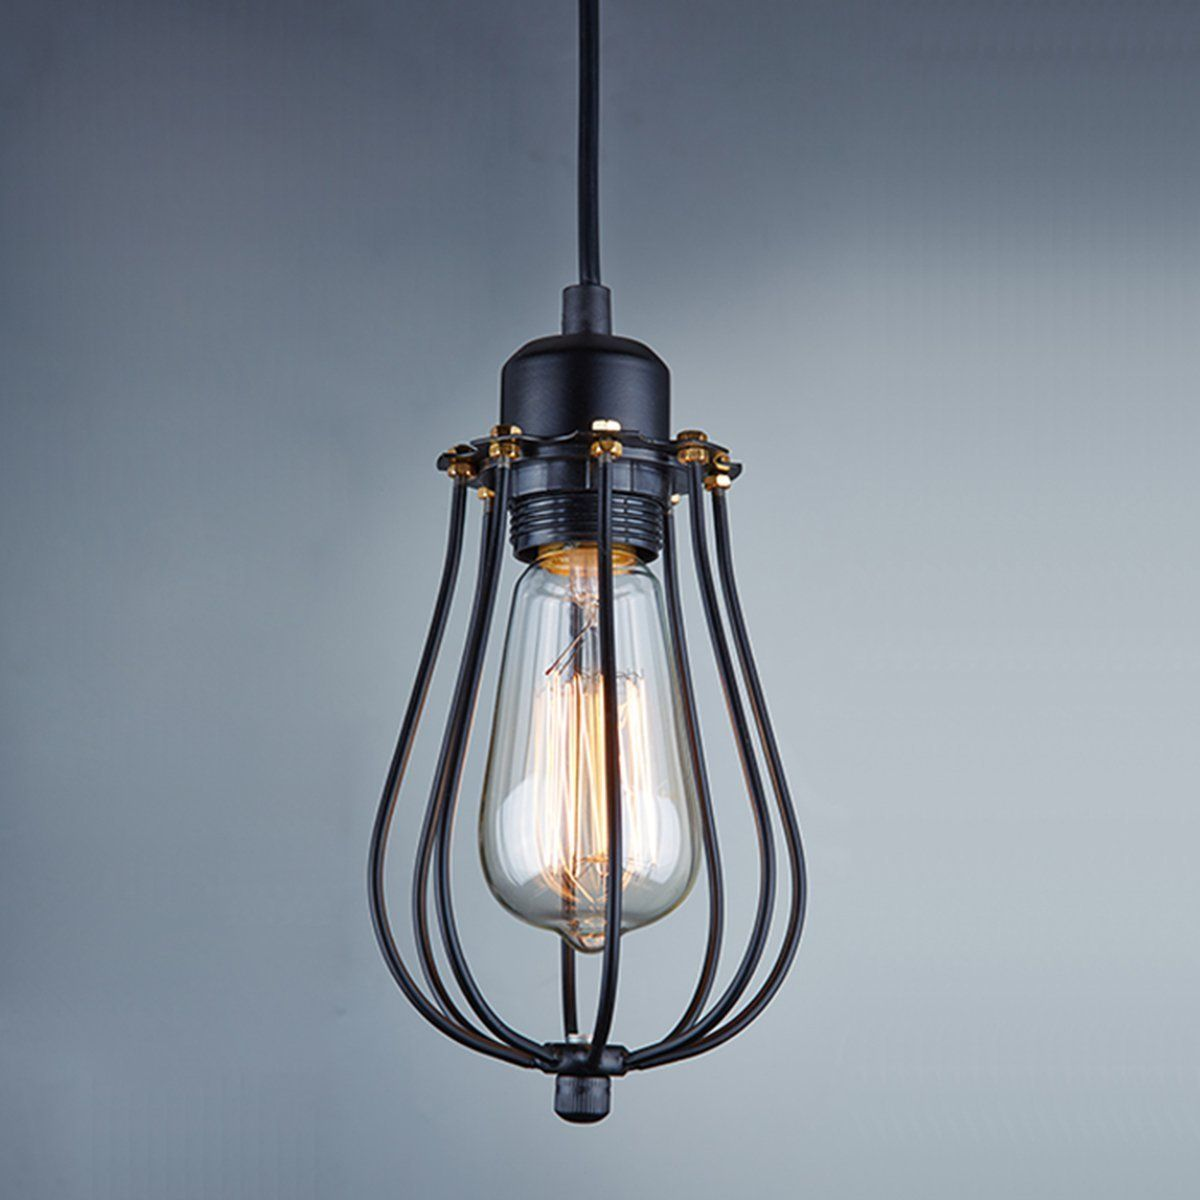 Mini Pendant Light Wire Bulb Cages Mcgill Lamp Guards And Cage Wiring Diagram Lightess Vintage Style Industrial Hanging Black Guard